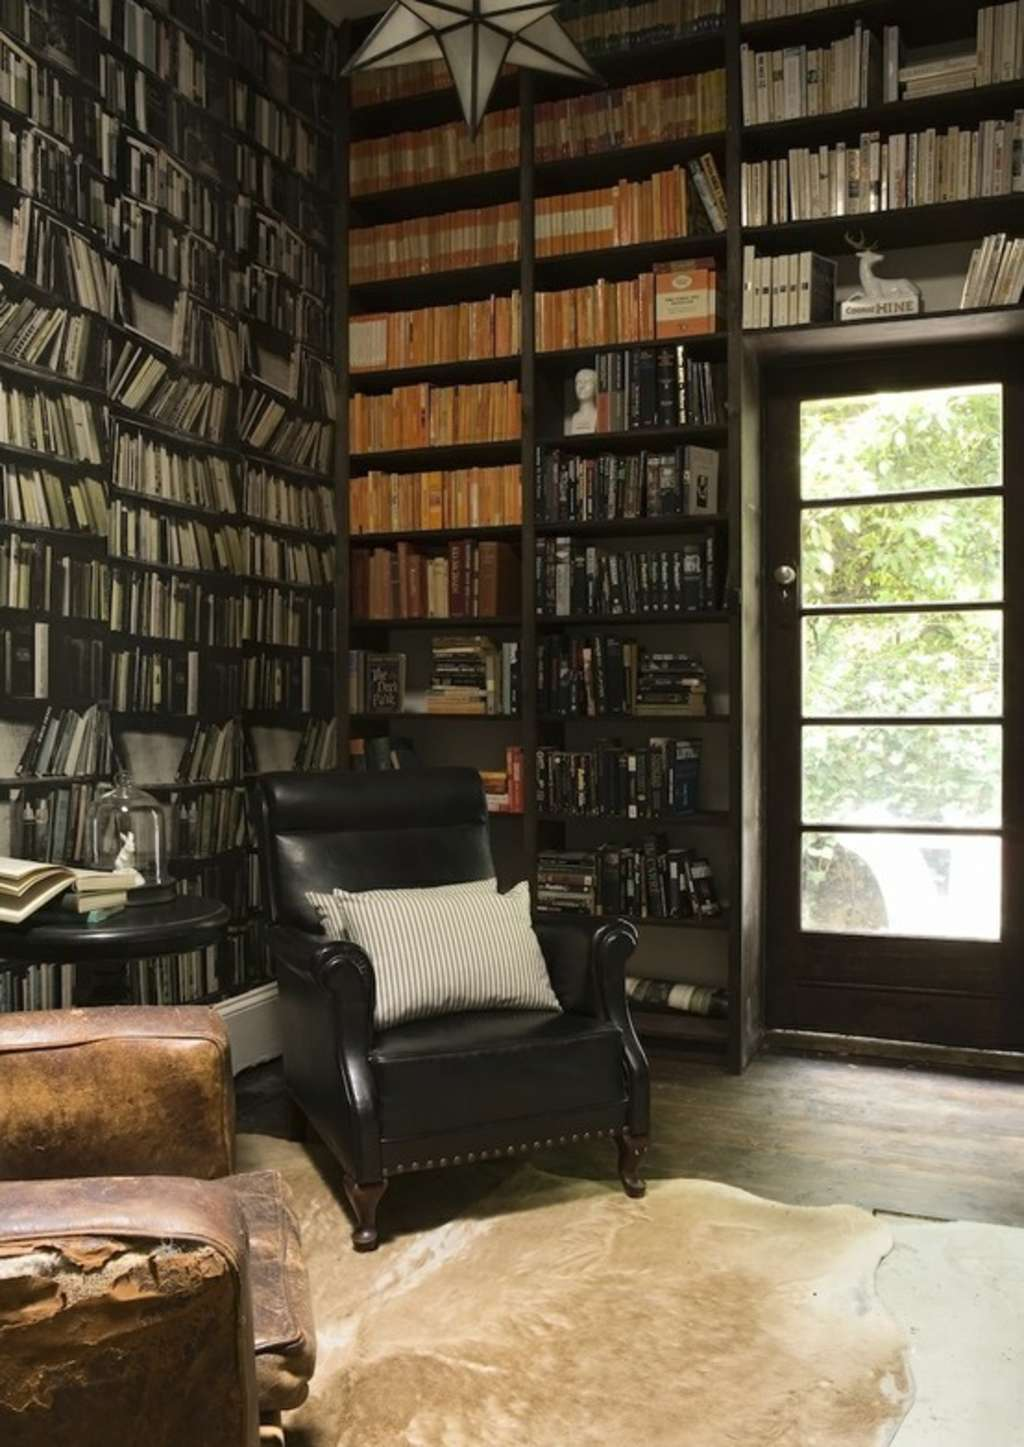 28 Dreamy Home Offices With Libraries For Creative Inspiration: Dark (But Definitely Not Dreary) Home Libraries